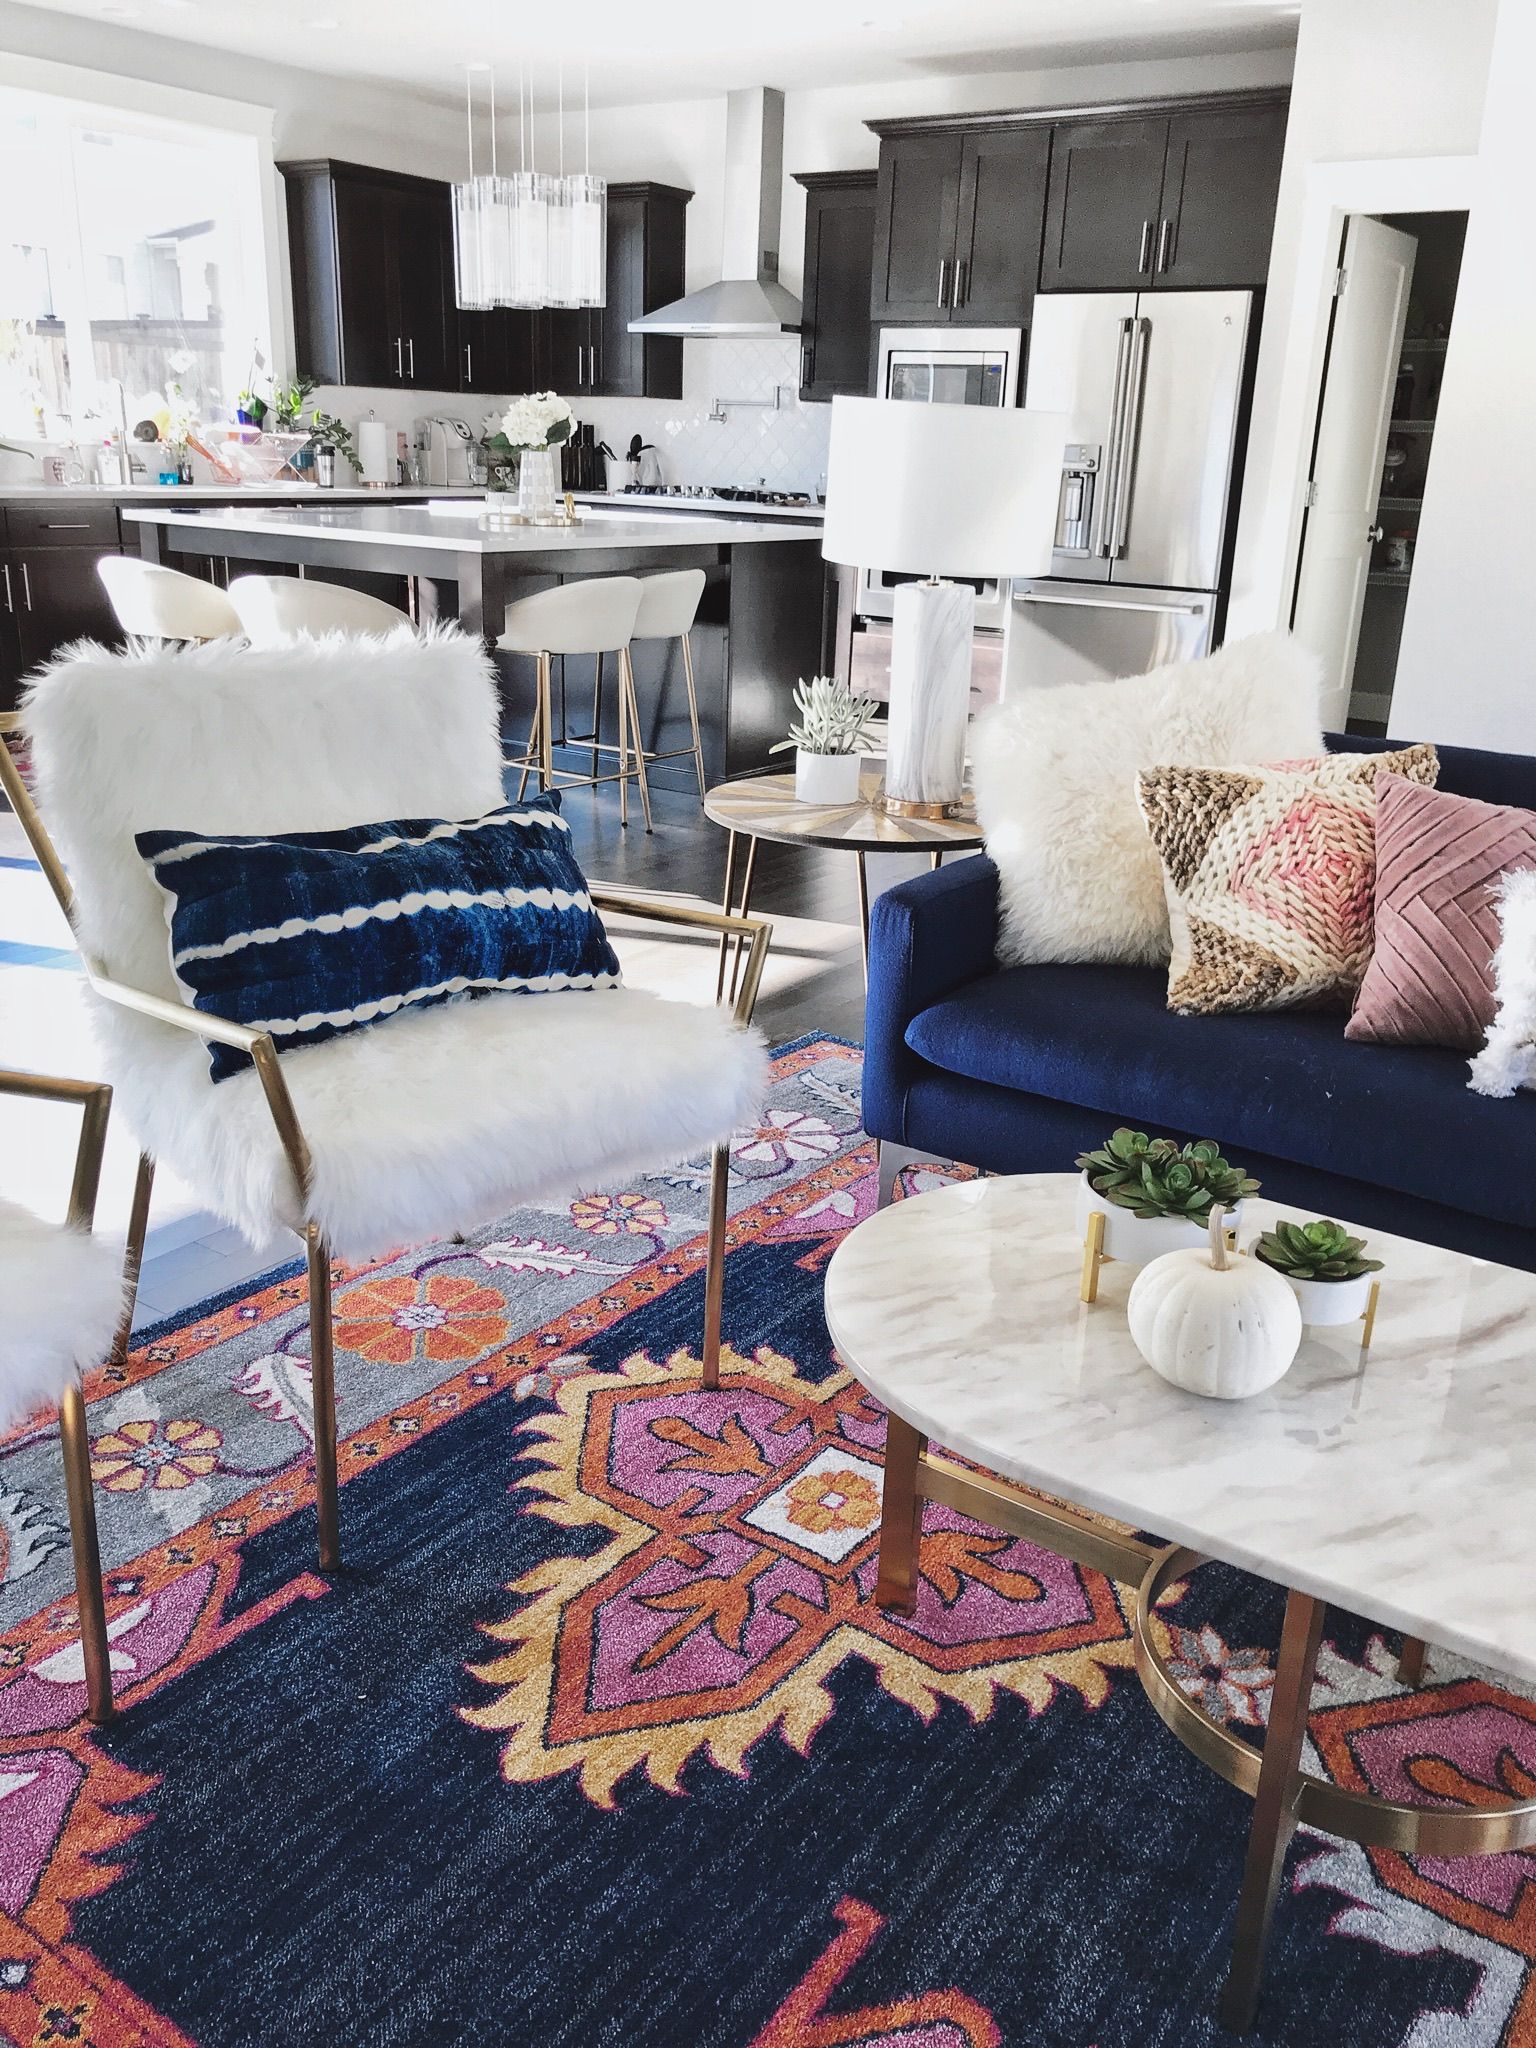 Nice Living Room Design With White Armchairs And Colorful Rug